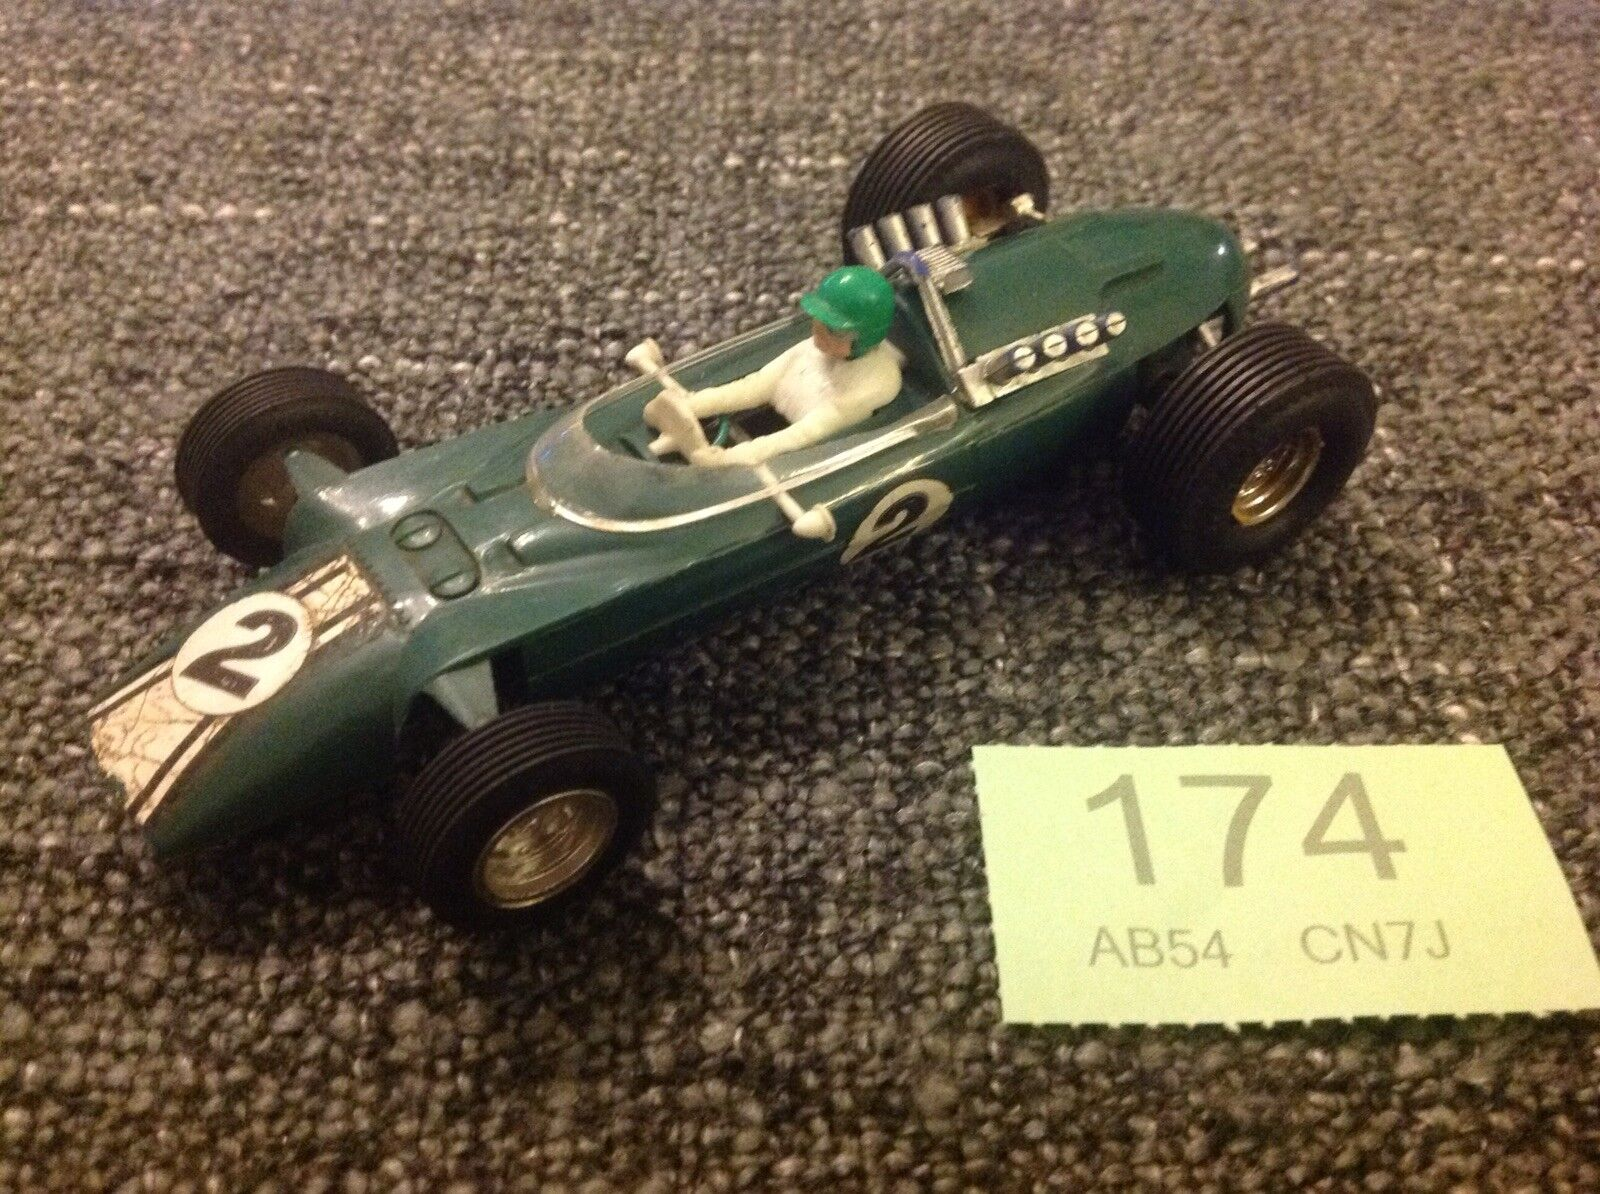 Scalextric Vintage C5 Europa Vee Green In Good Running Condition